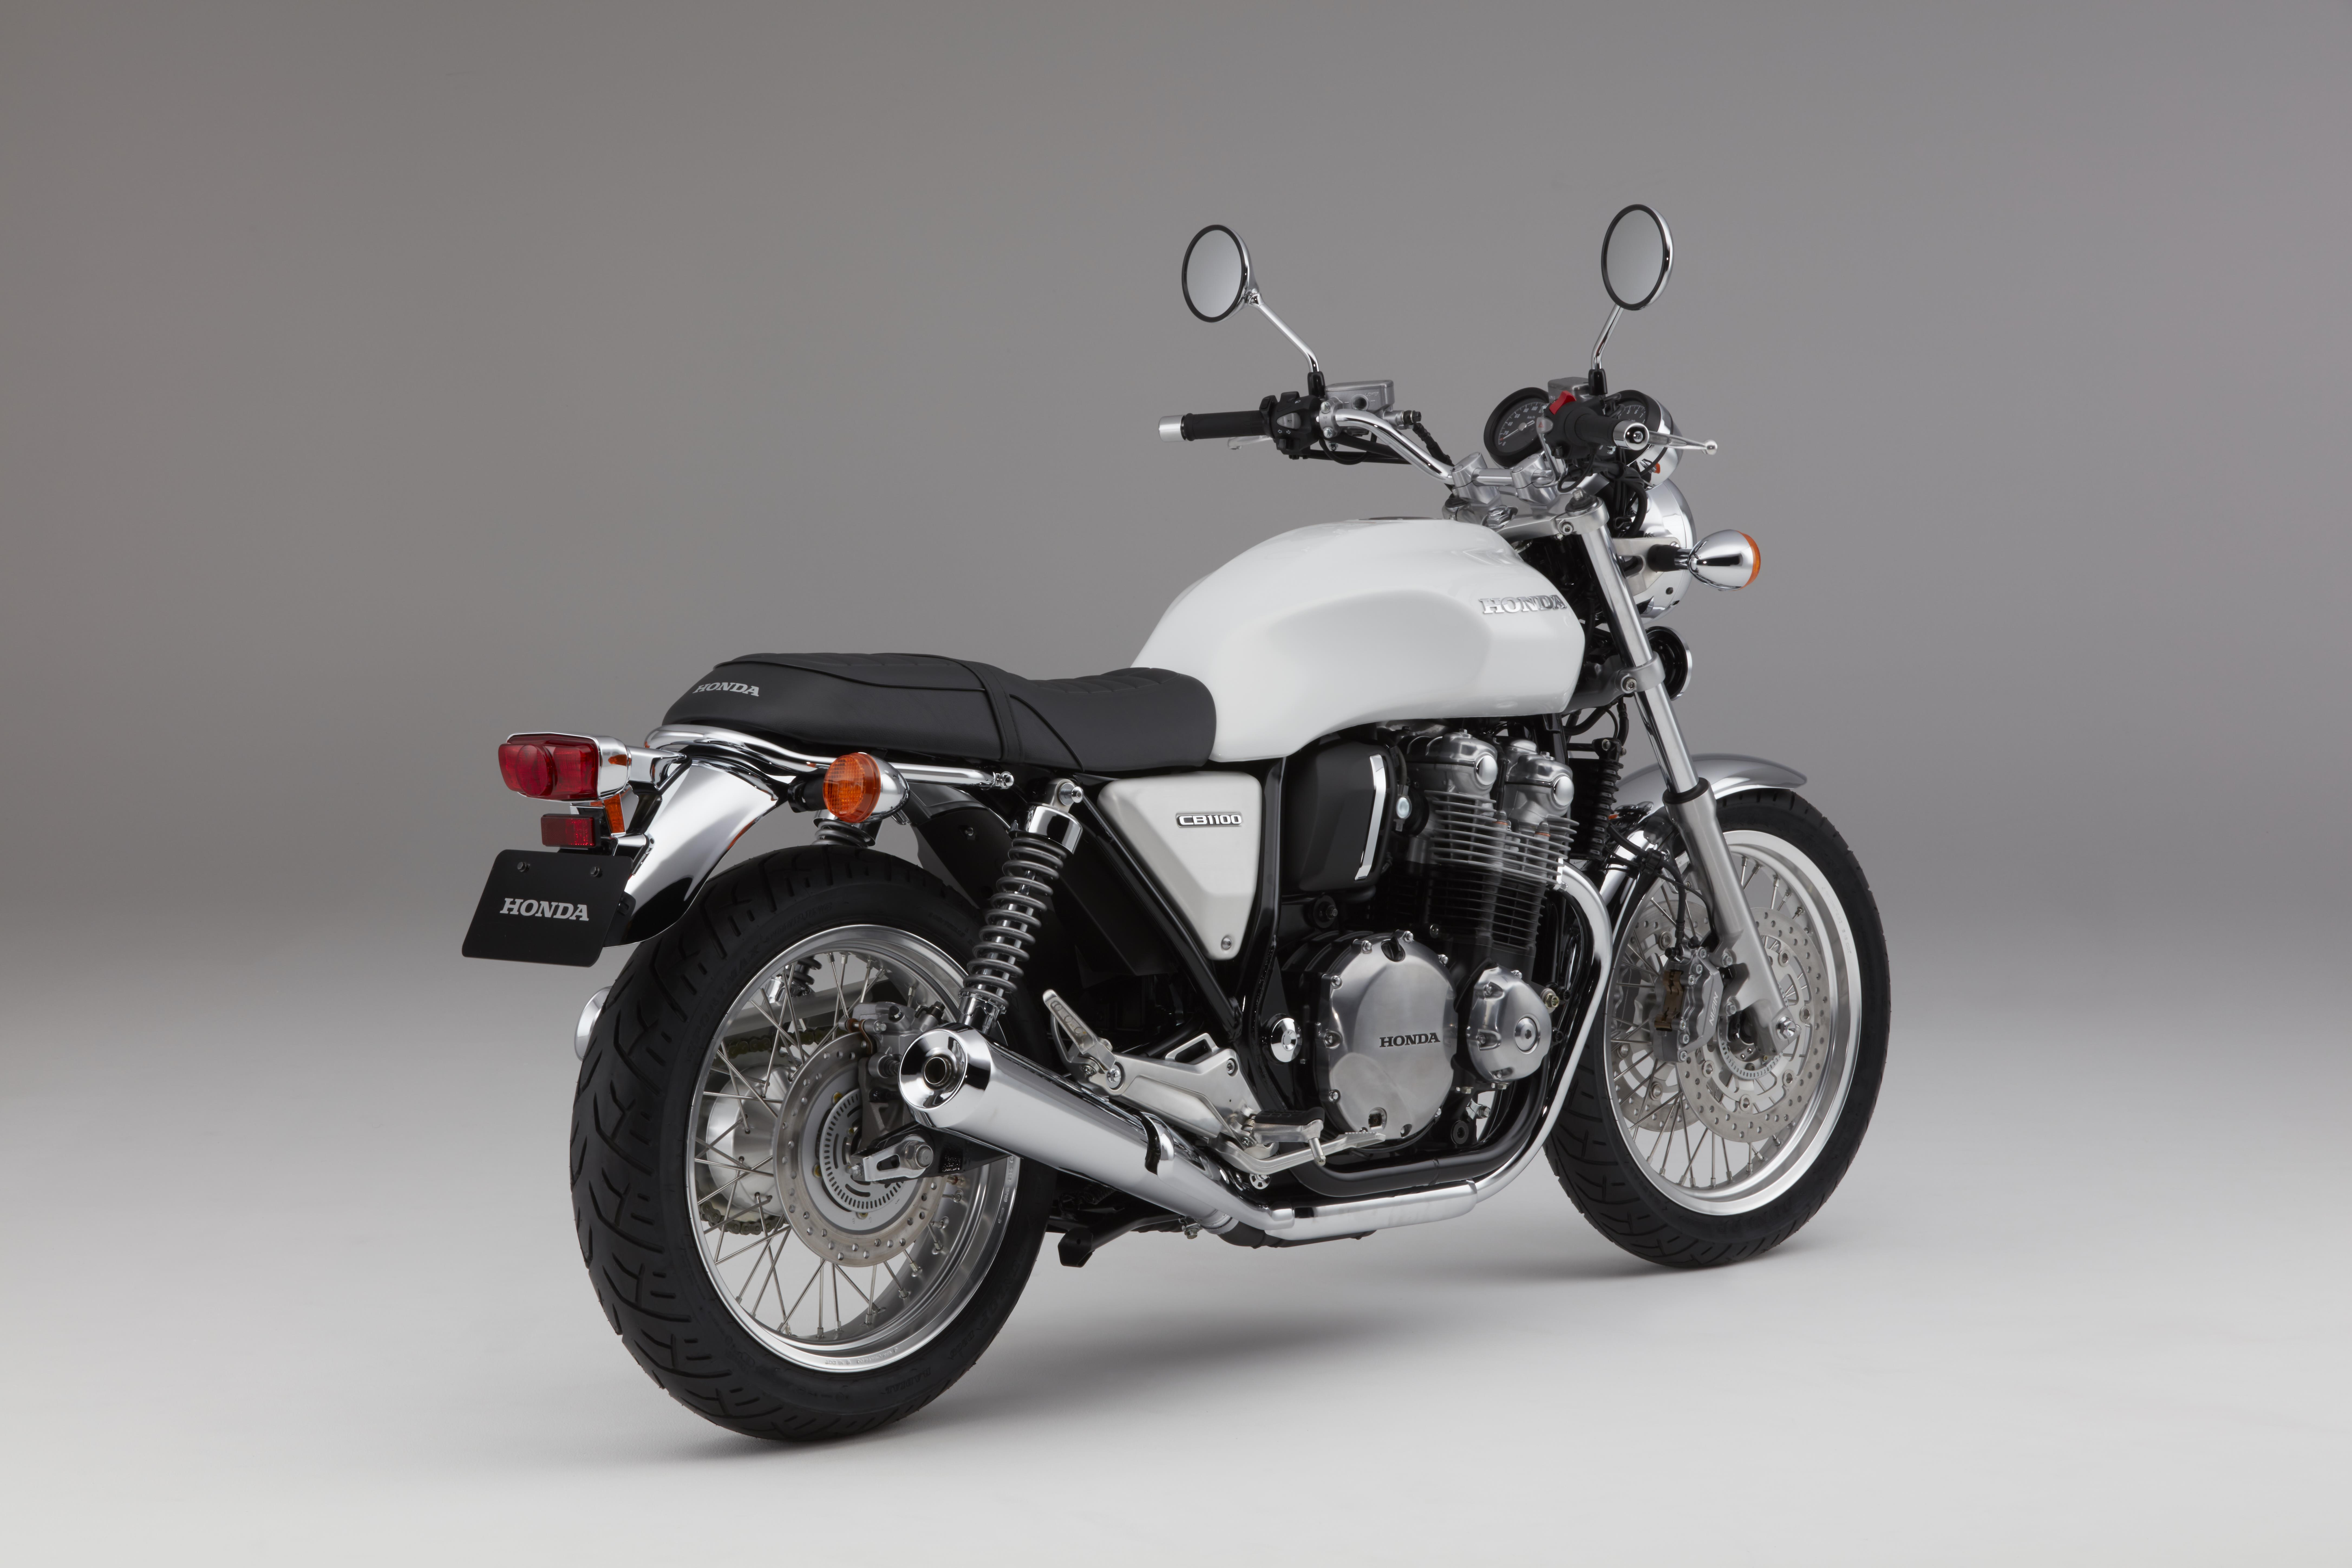 Honda reveals updated CB1100EX and new CB1100RS